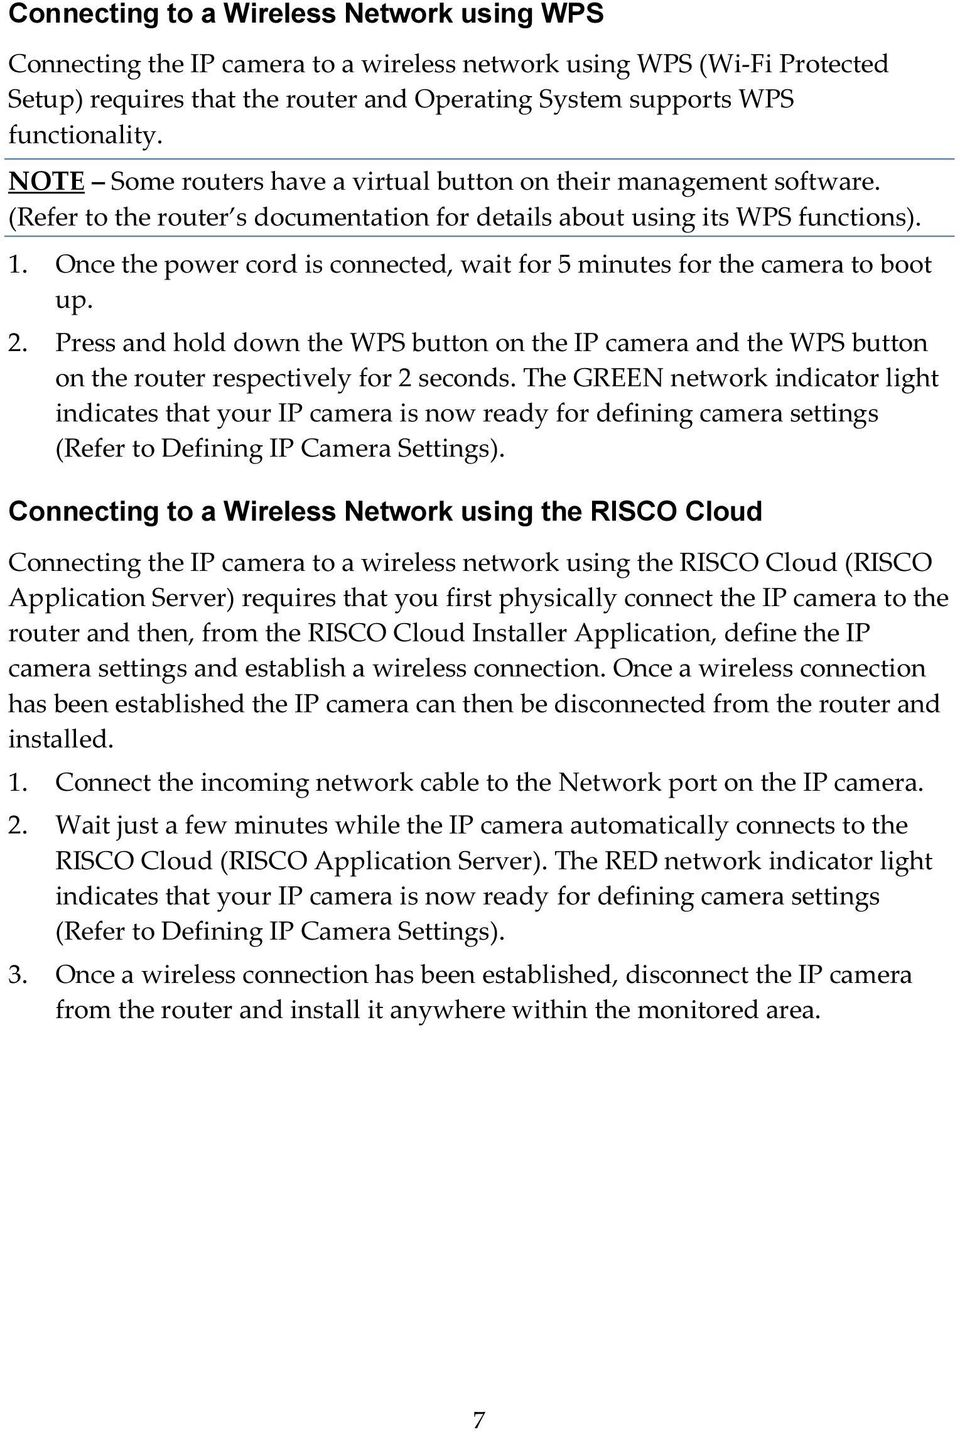 Once the power cord is connected, wait for 5 minutes for the camera to boot up. 2. Press and hold down the WPS button on the IP camera and the WPS button on the router respectively for 2 seconds.